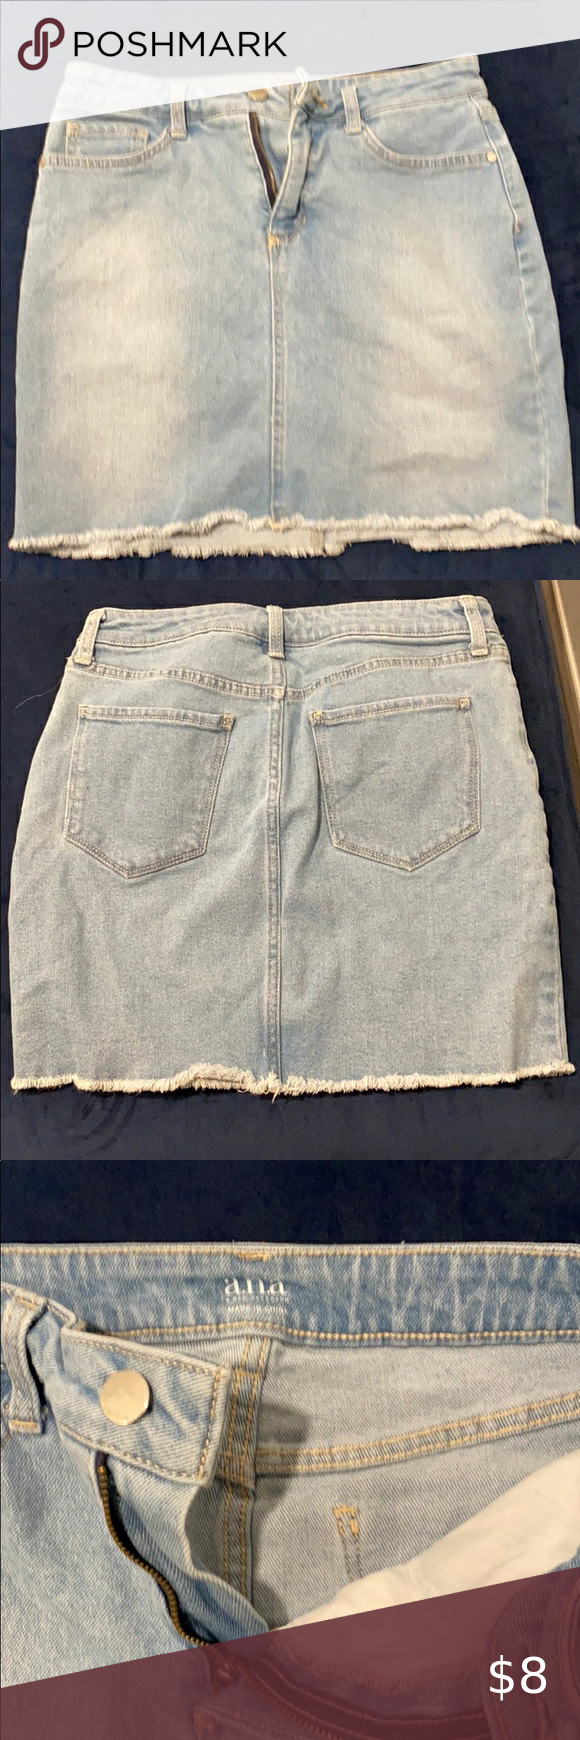 ANA blue jean skirt Blue jean skirt. Size 8. Gently used. Smoke free home. jcpenney Skirts Midi